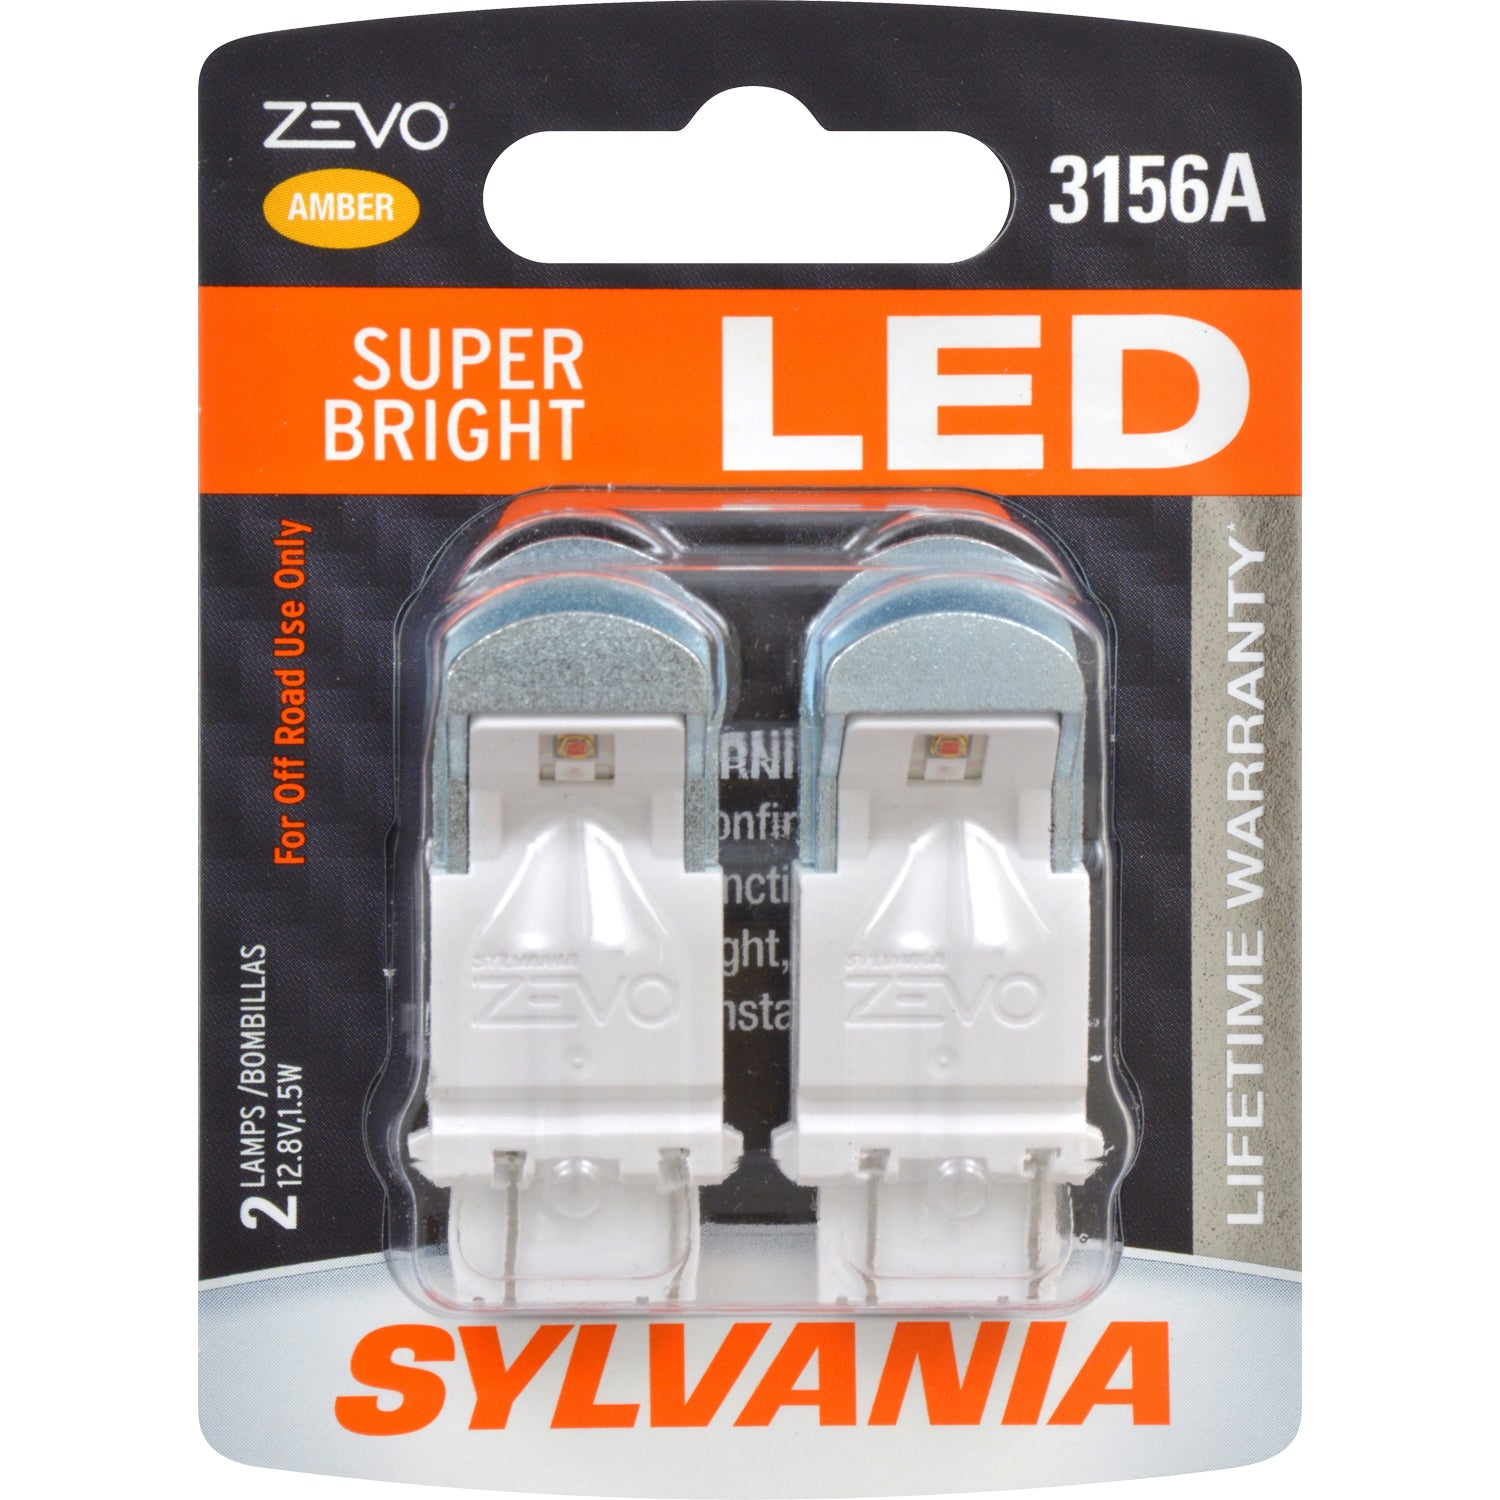 2-PK SYLVANIA ZEVO 3156 Amber LED Automotive Bulb